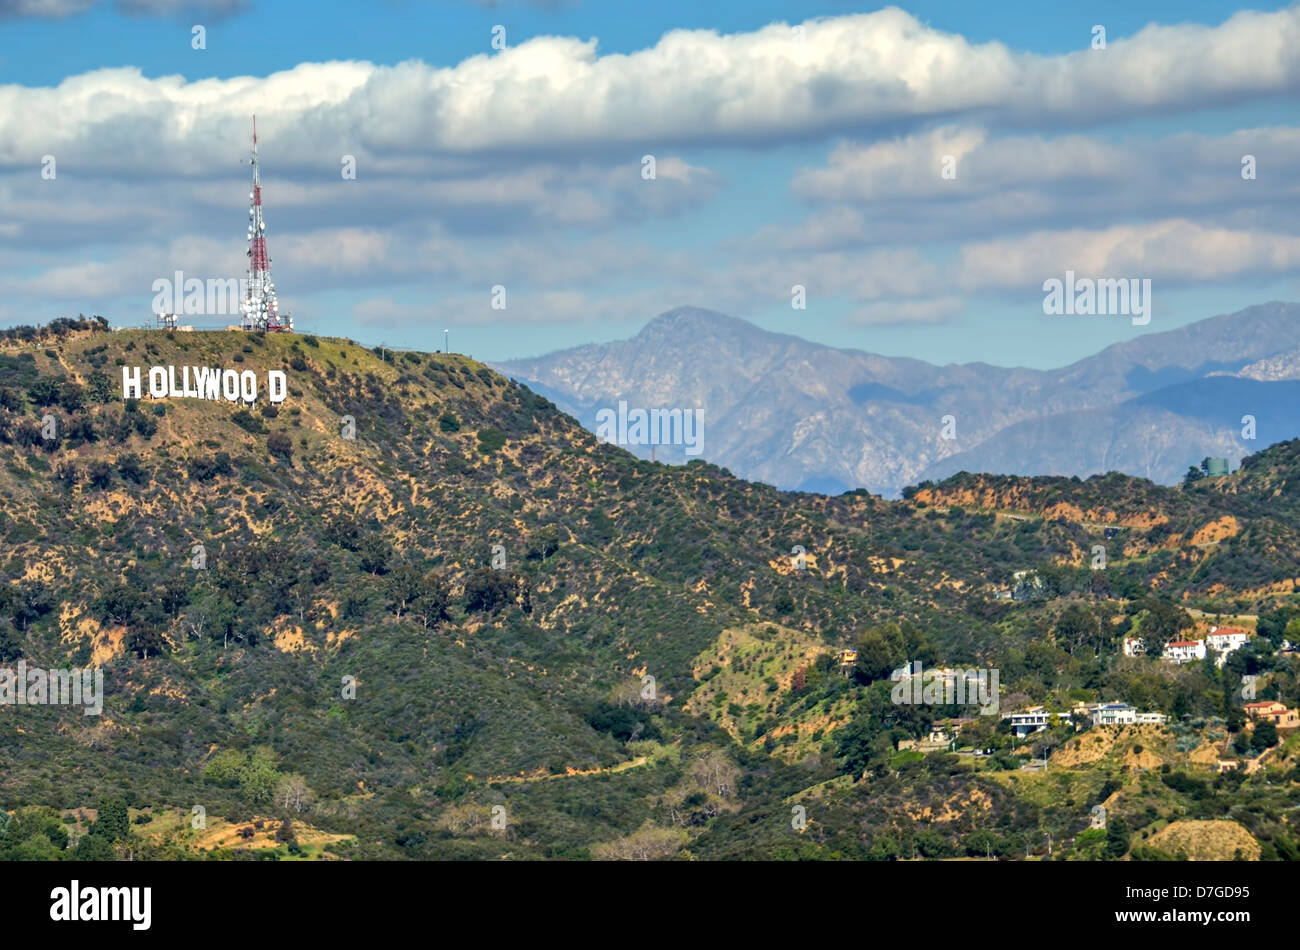 hollywood sign in the hollywood hills west hollywood los. Black Bedroom Furniture Sets. Home Design Ideas